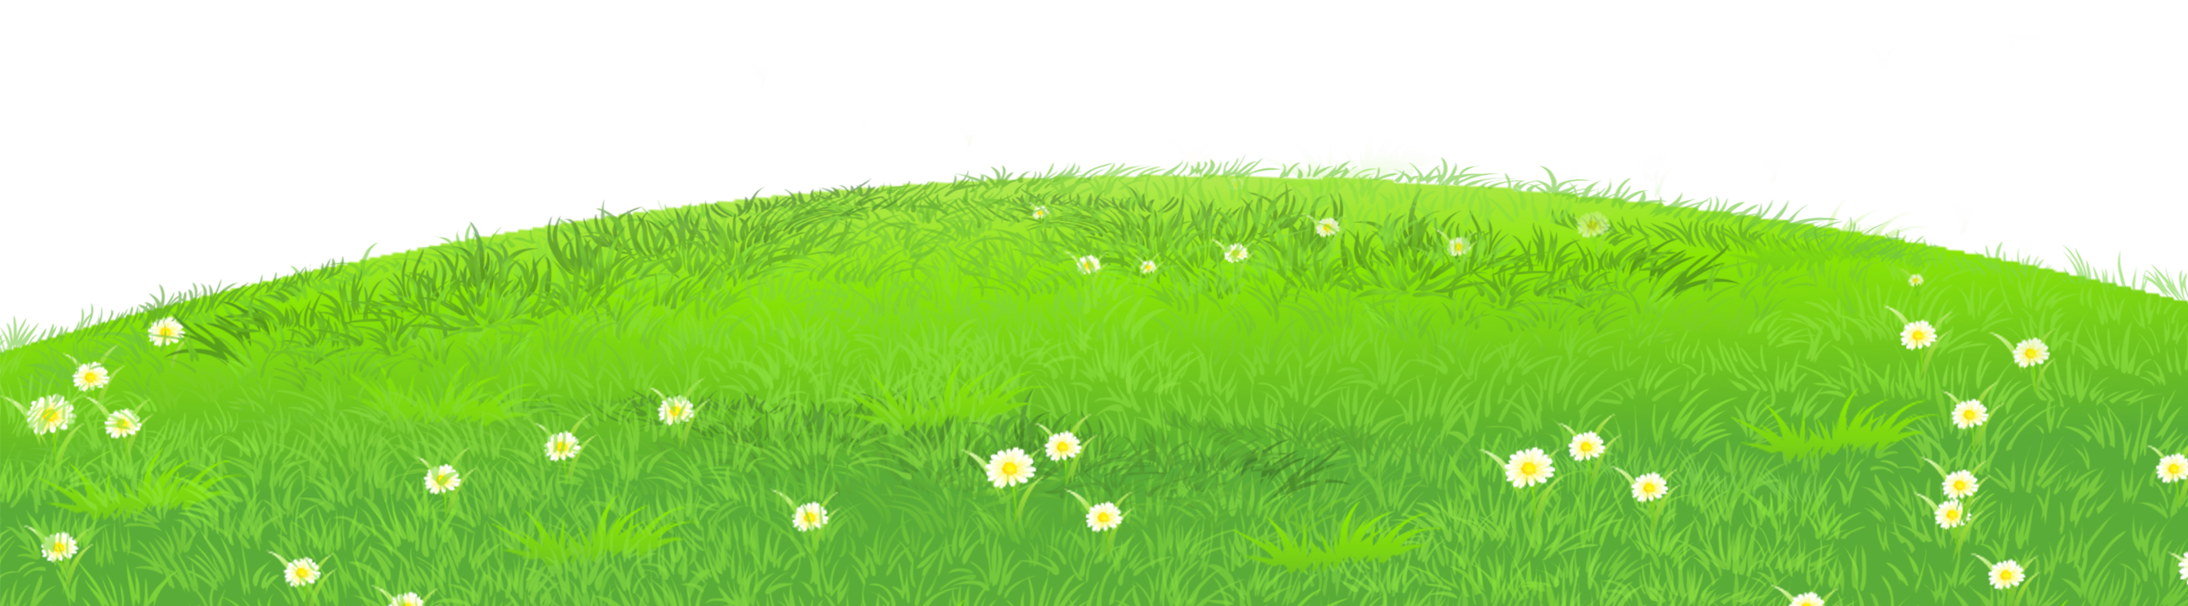 Lake clipart grassland. Grass with daisies png